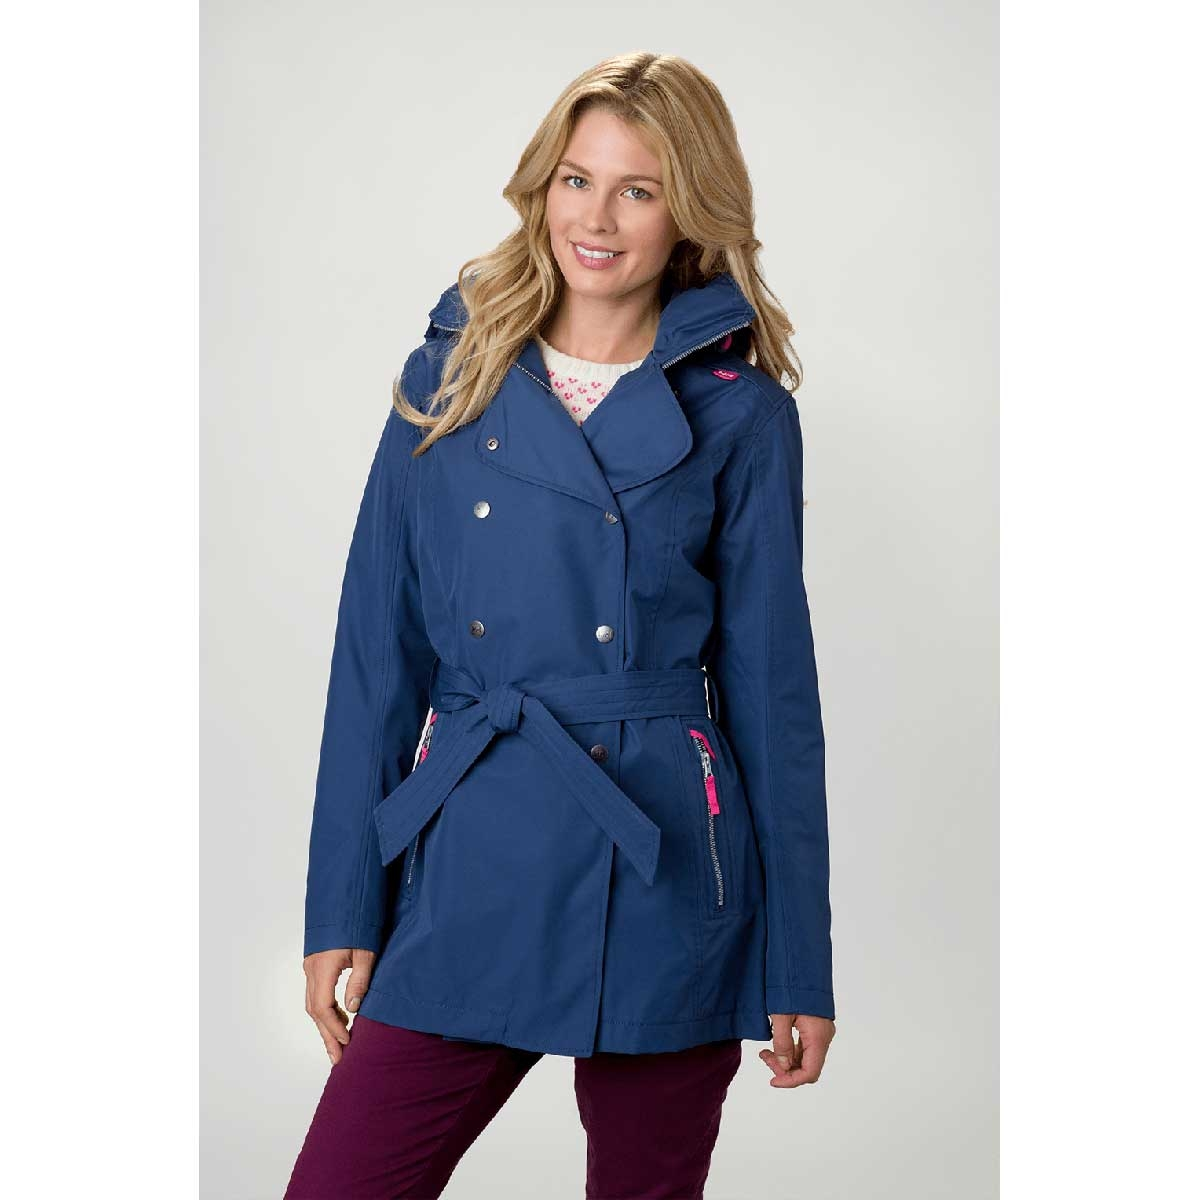 usa cheap sale new appearance variousstyles Helly Hansen Welsey Trench Jacket (Women's) - Deep Steel